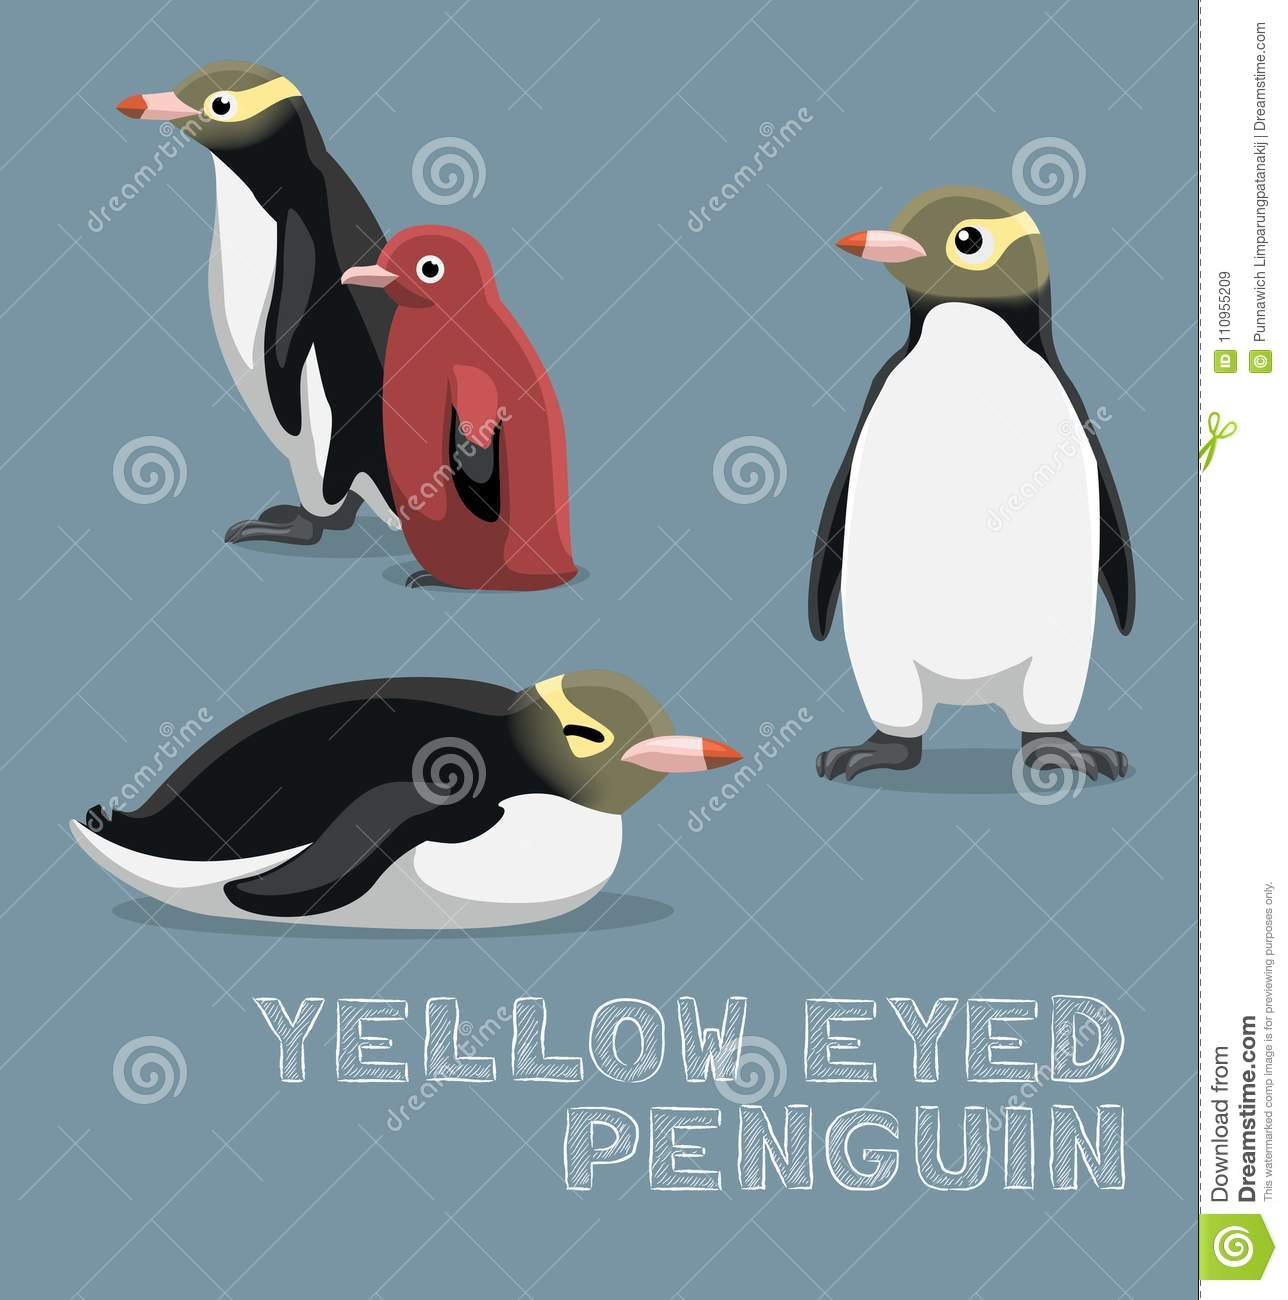 Free Penguin Pictures Free, Download Free Clip Art, Free Clip Art on Clipart  Library